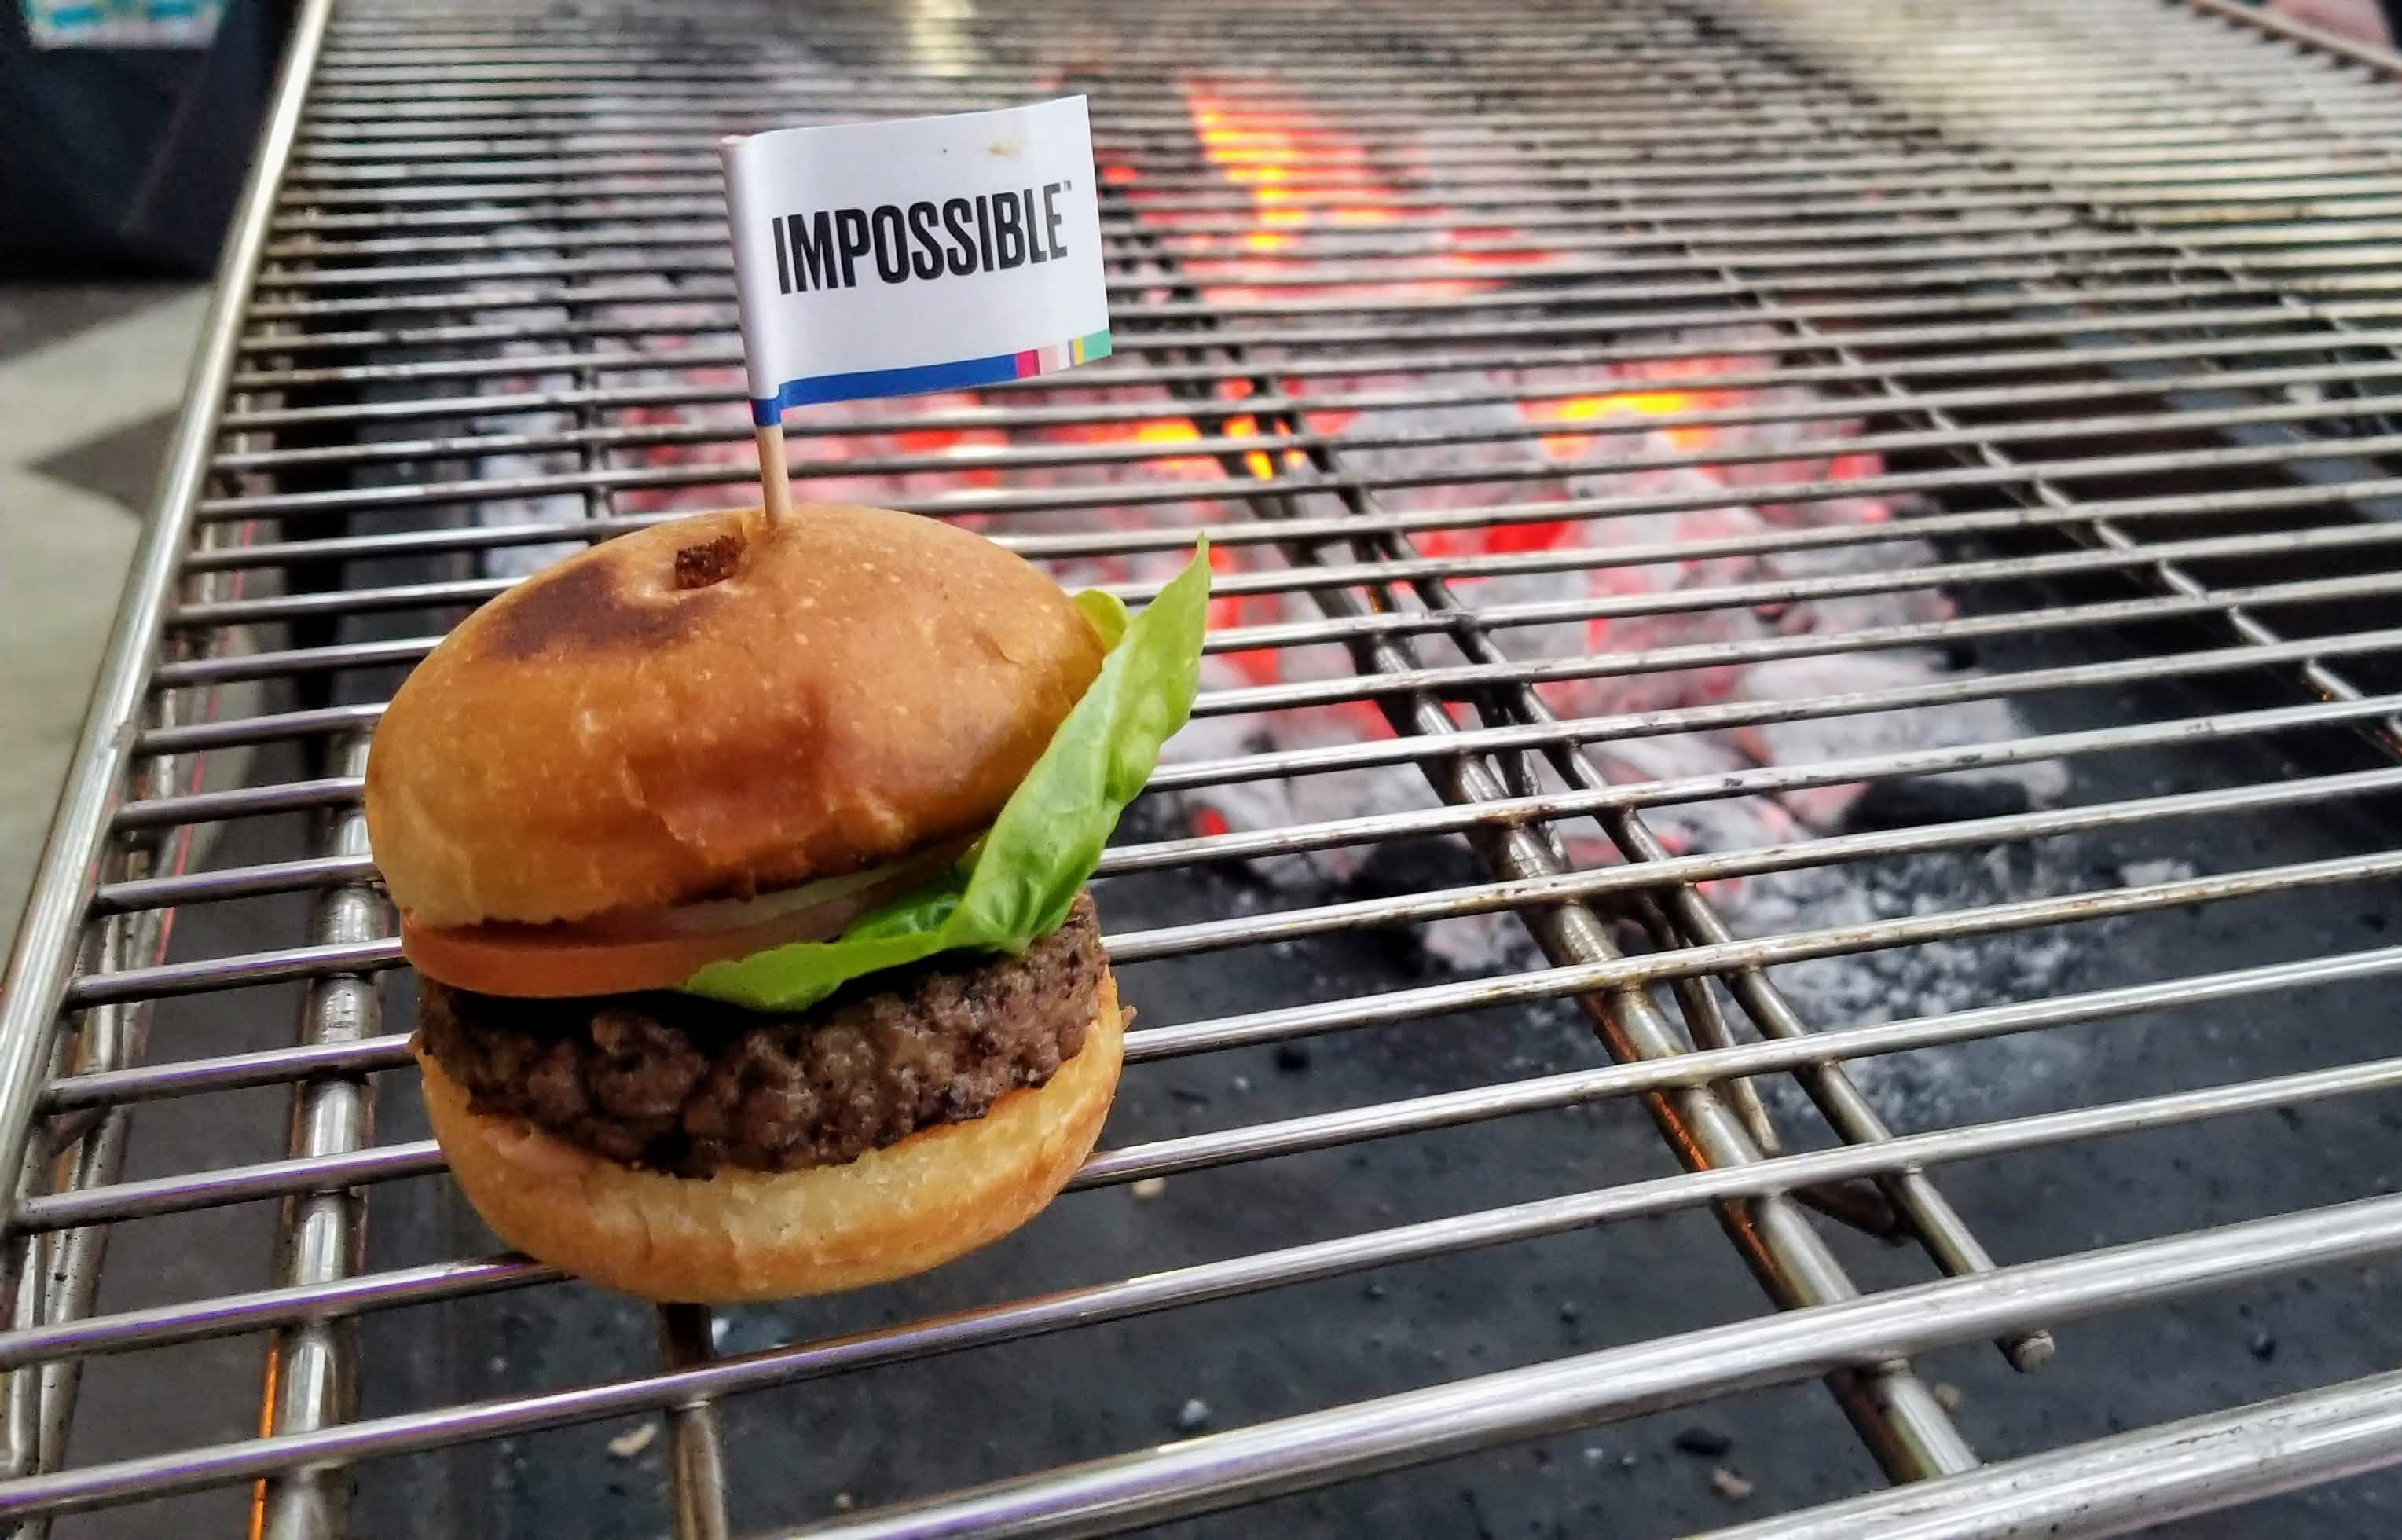 photo image Impossible Foods Rolls Out The All New Impossible Burger 2.0 At #CES2019